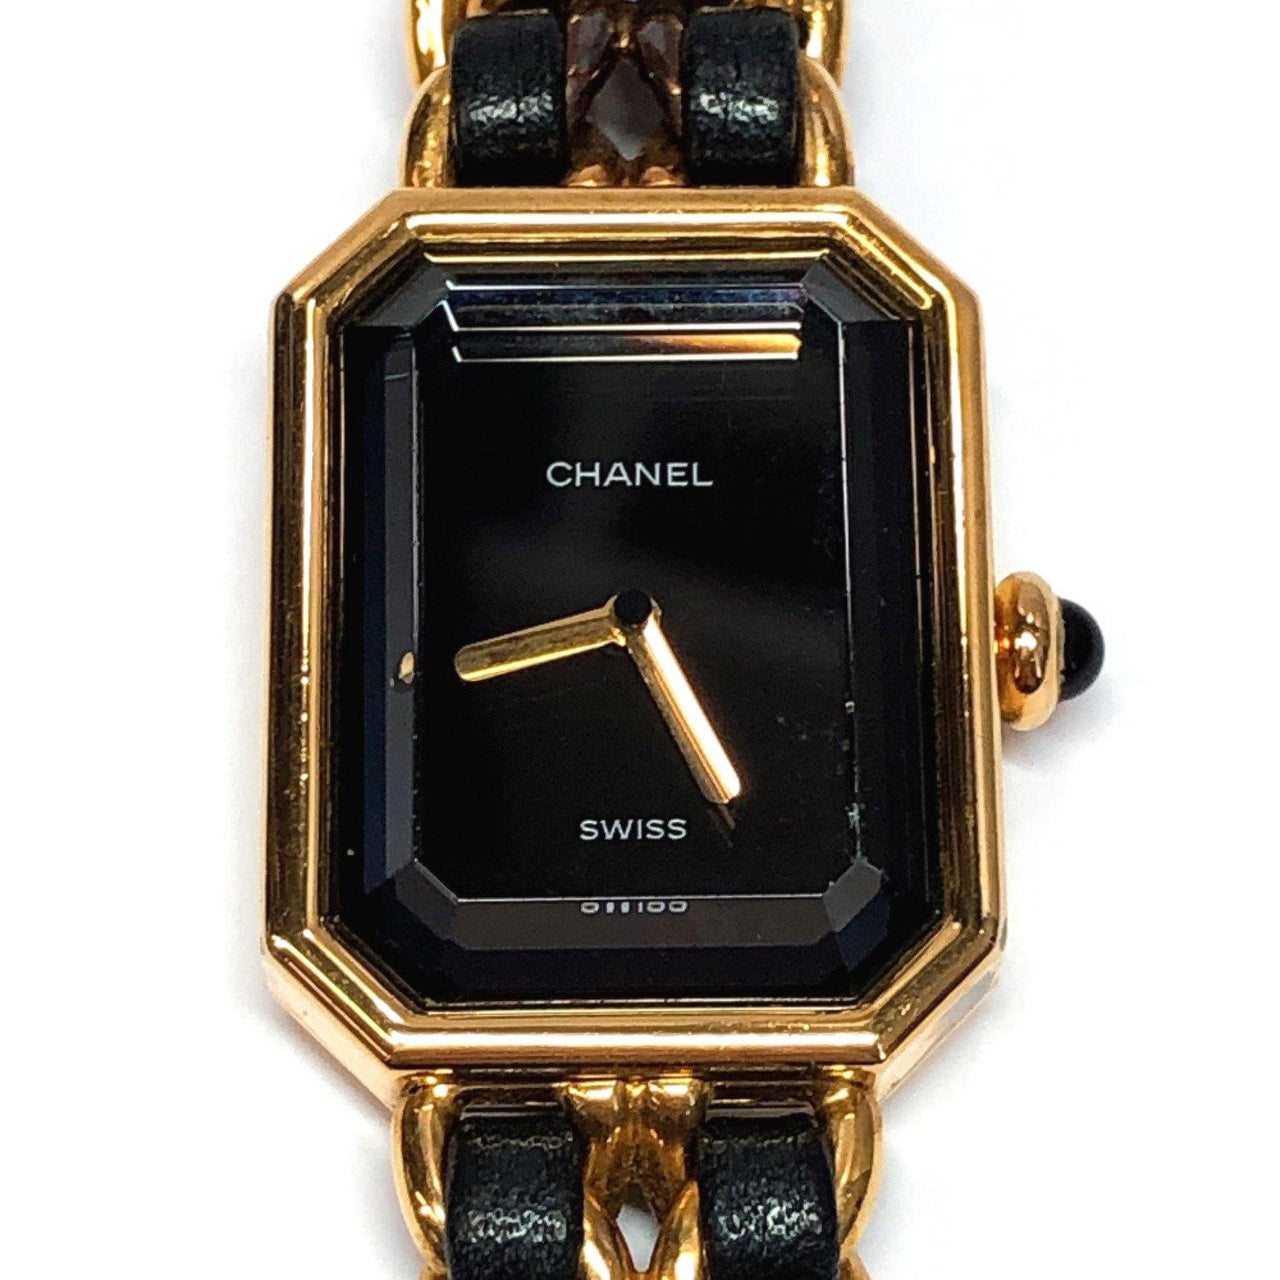 CHANEL Watches H0001 Premiere M vintage metal/leather gold black Women Used